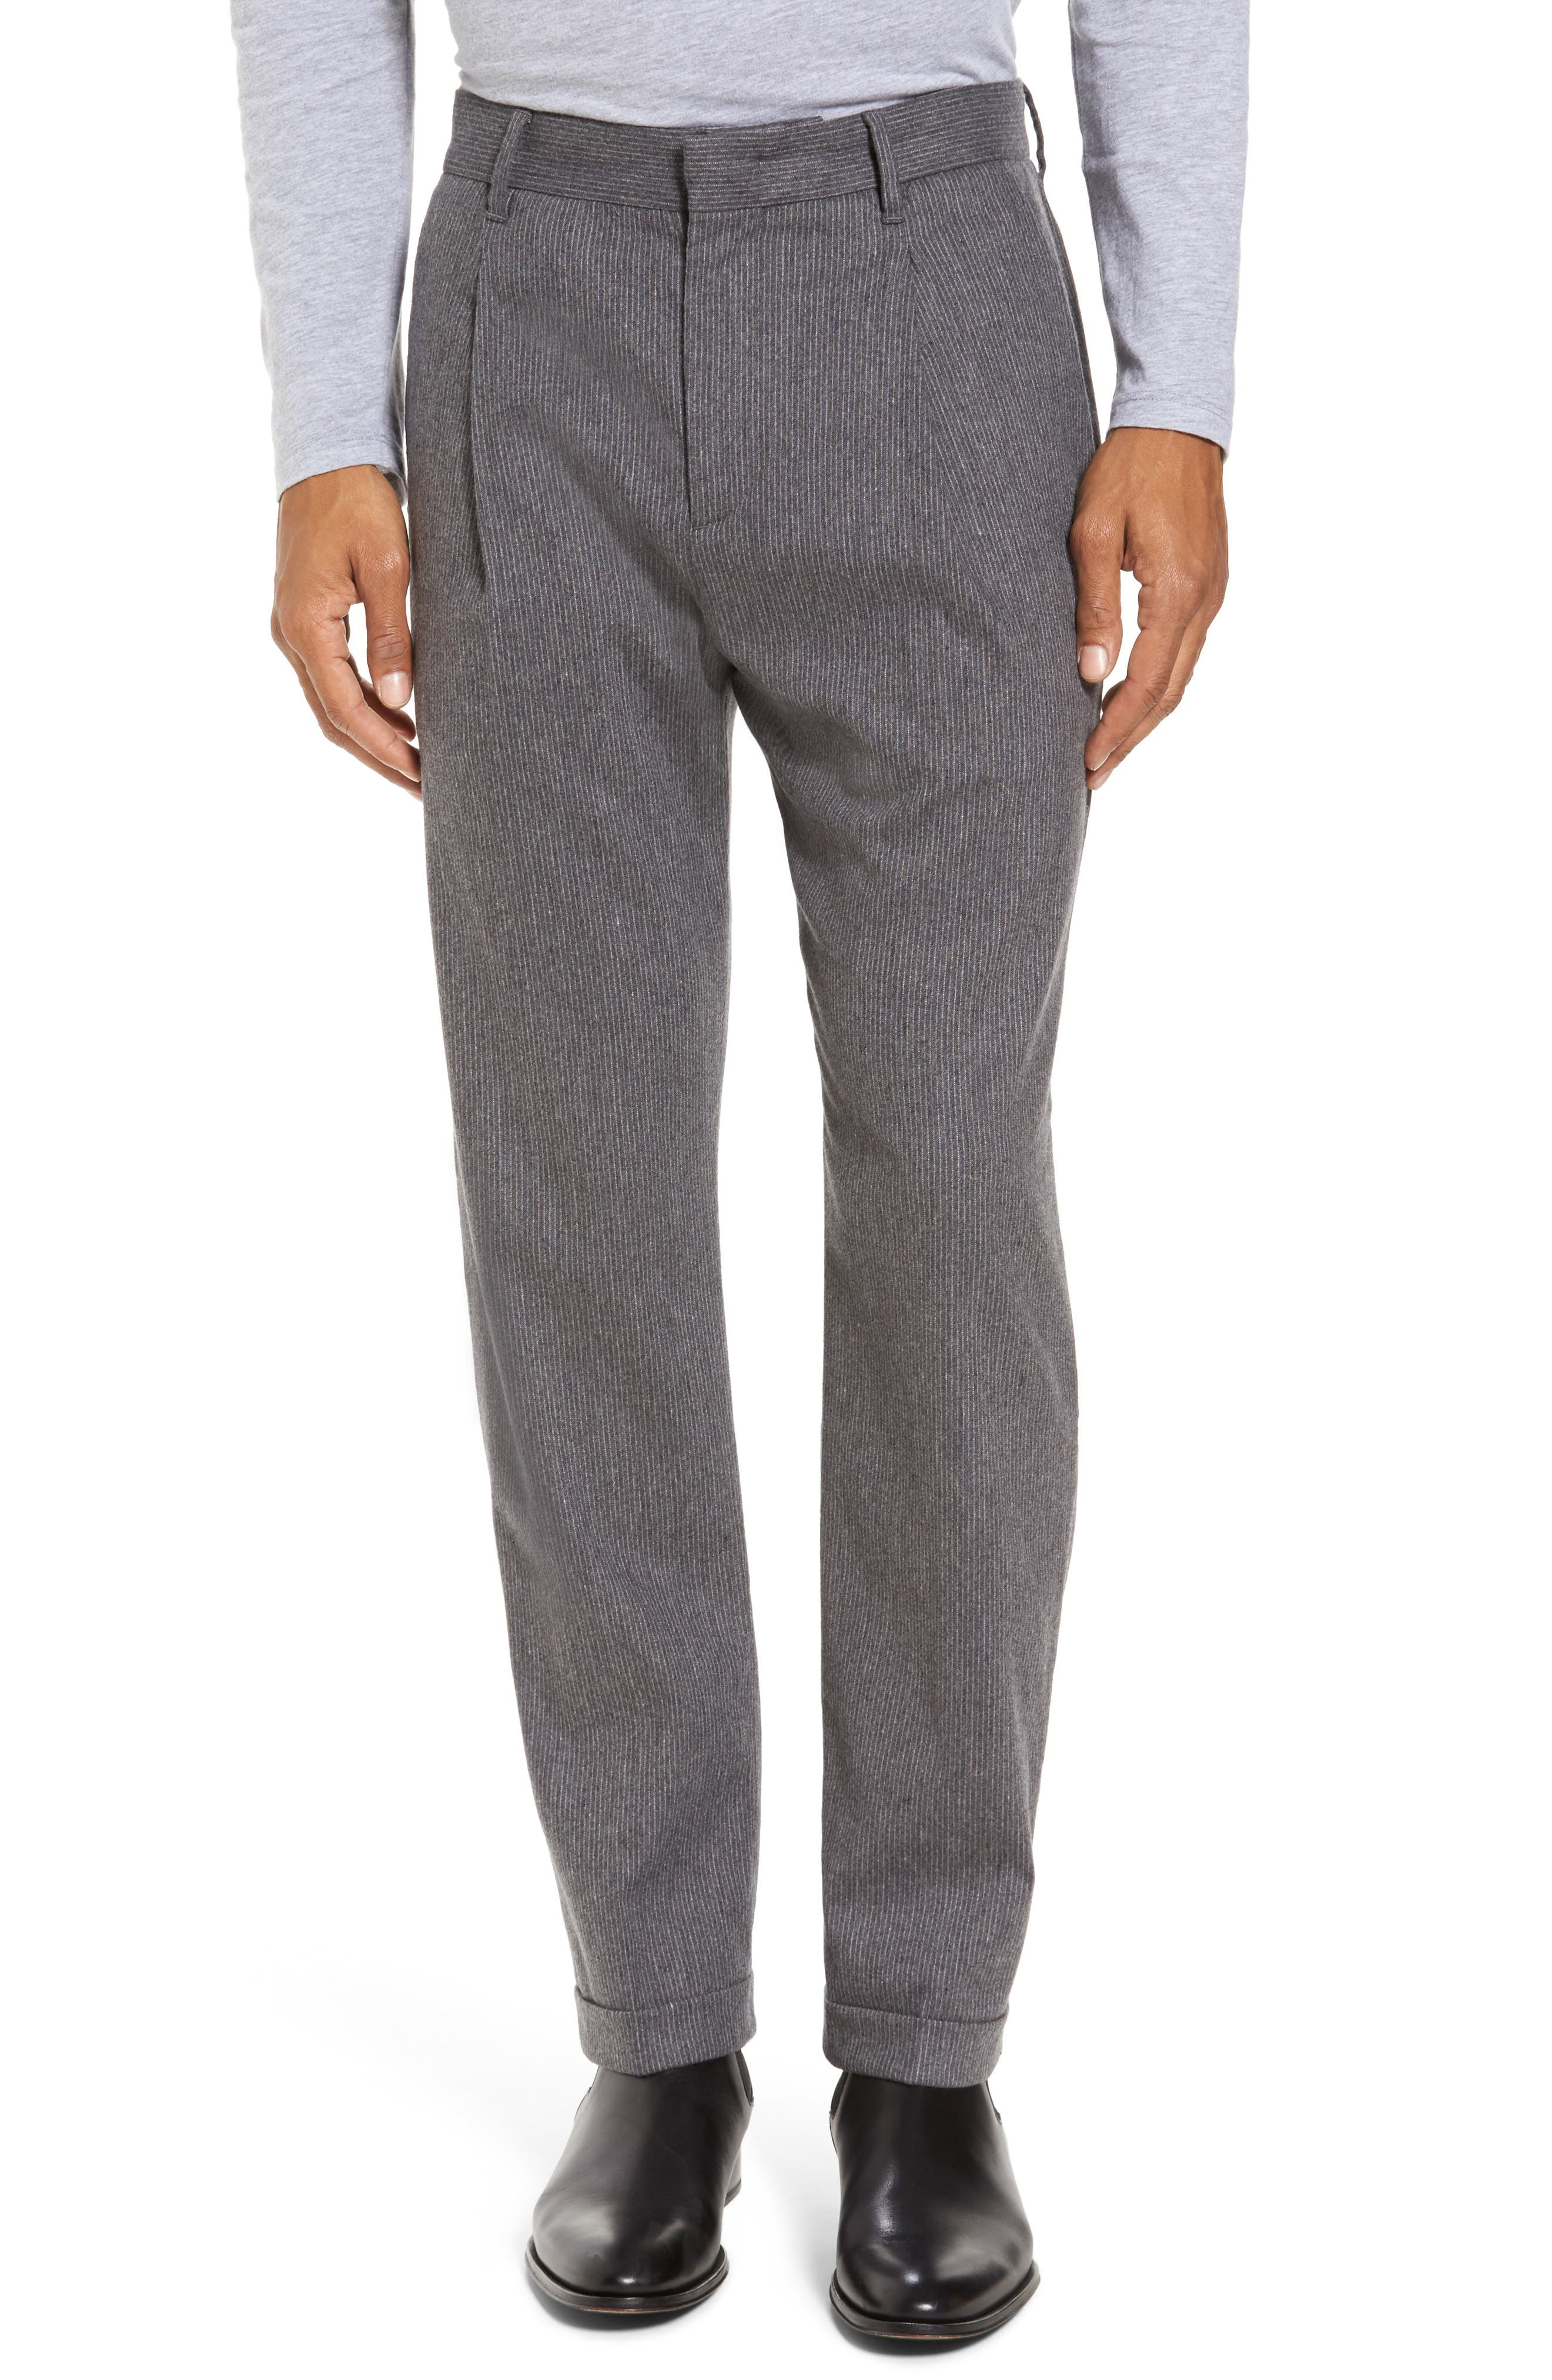 Rushmore Pinstripe Stretch Wool Blend Trousers,                         Main,                         color, 020